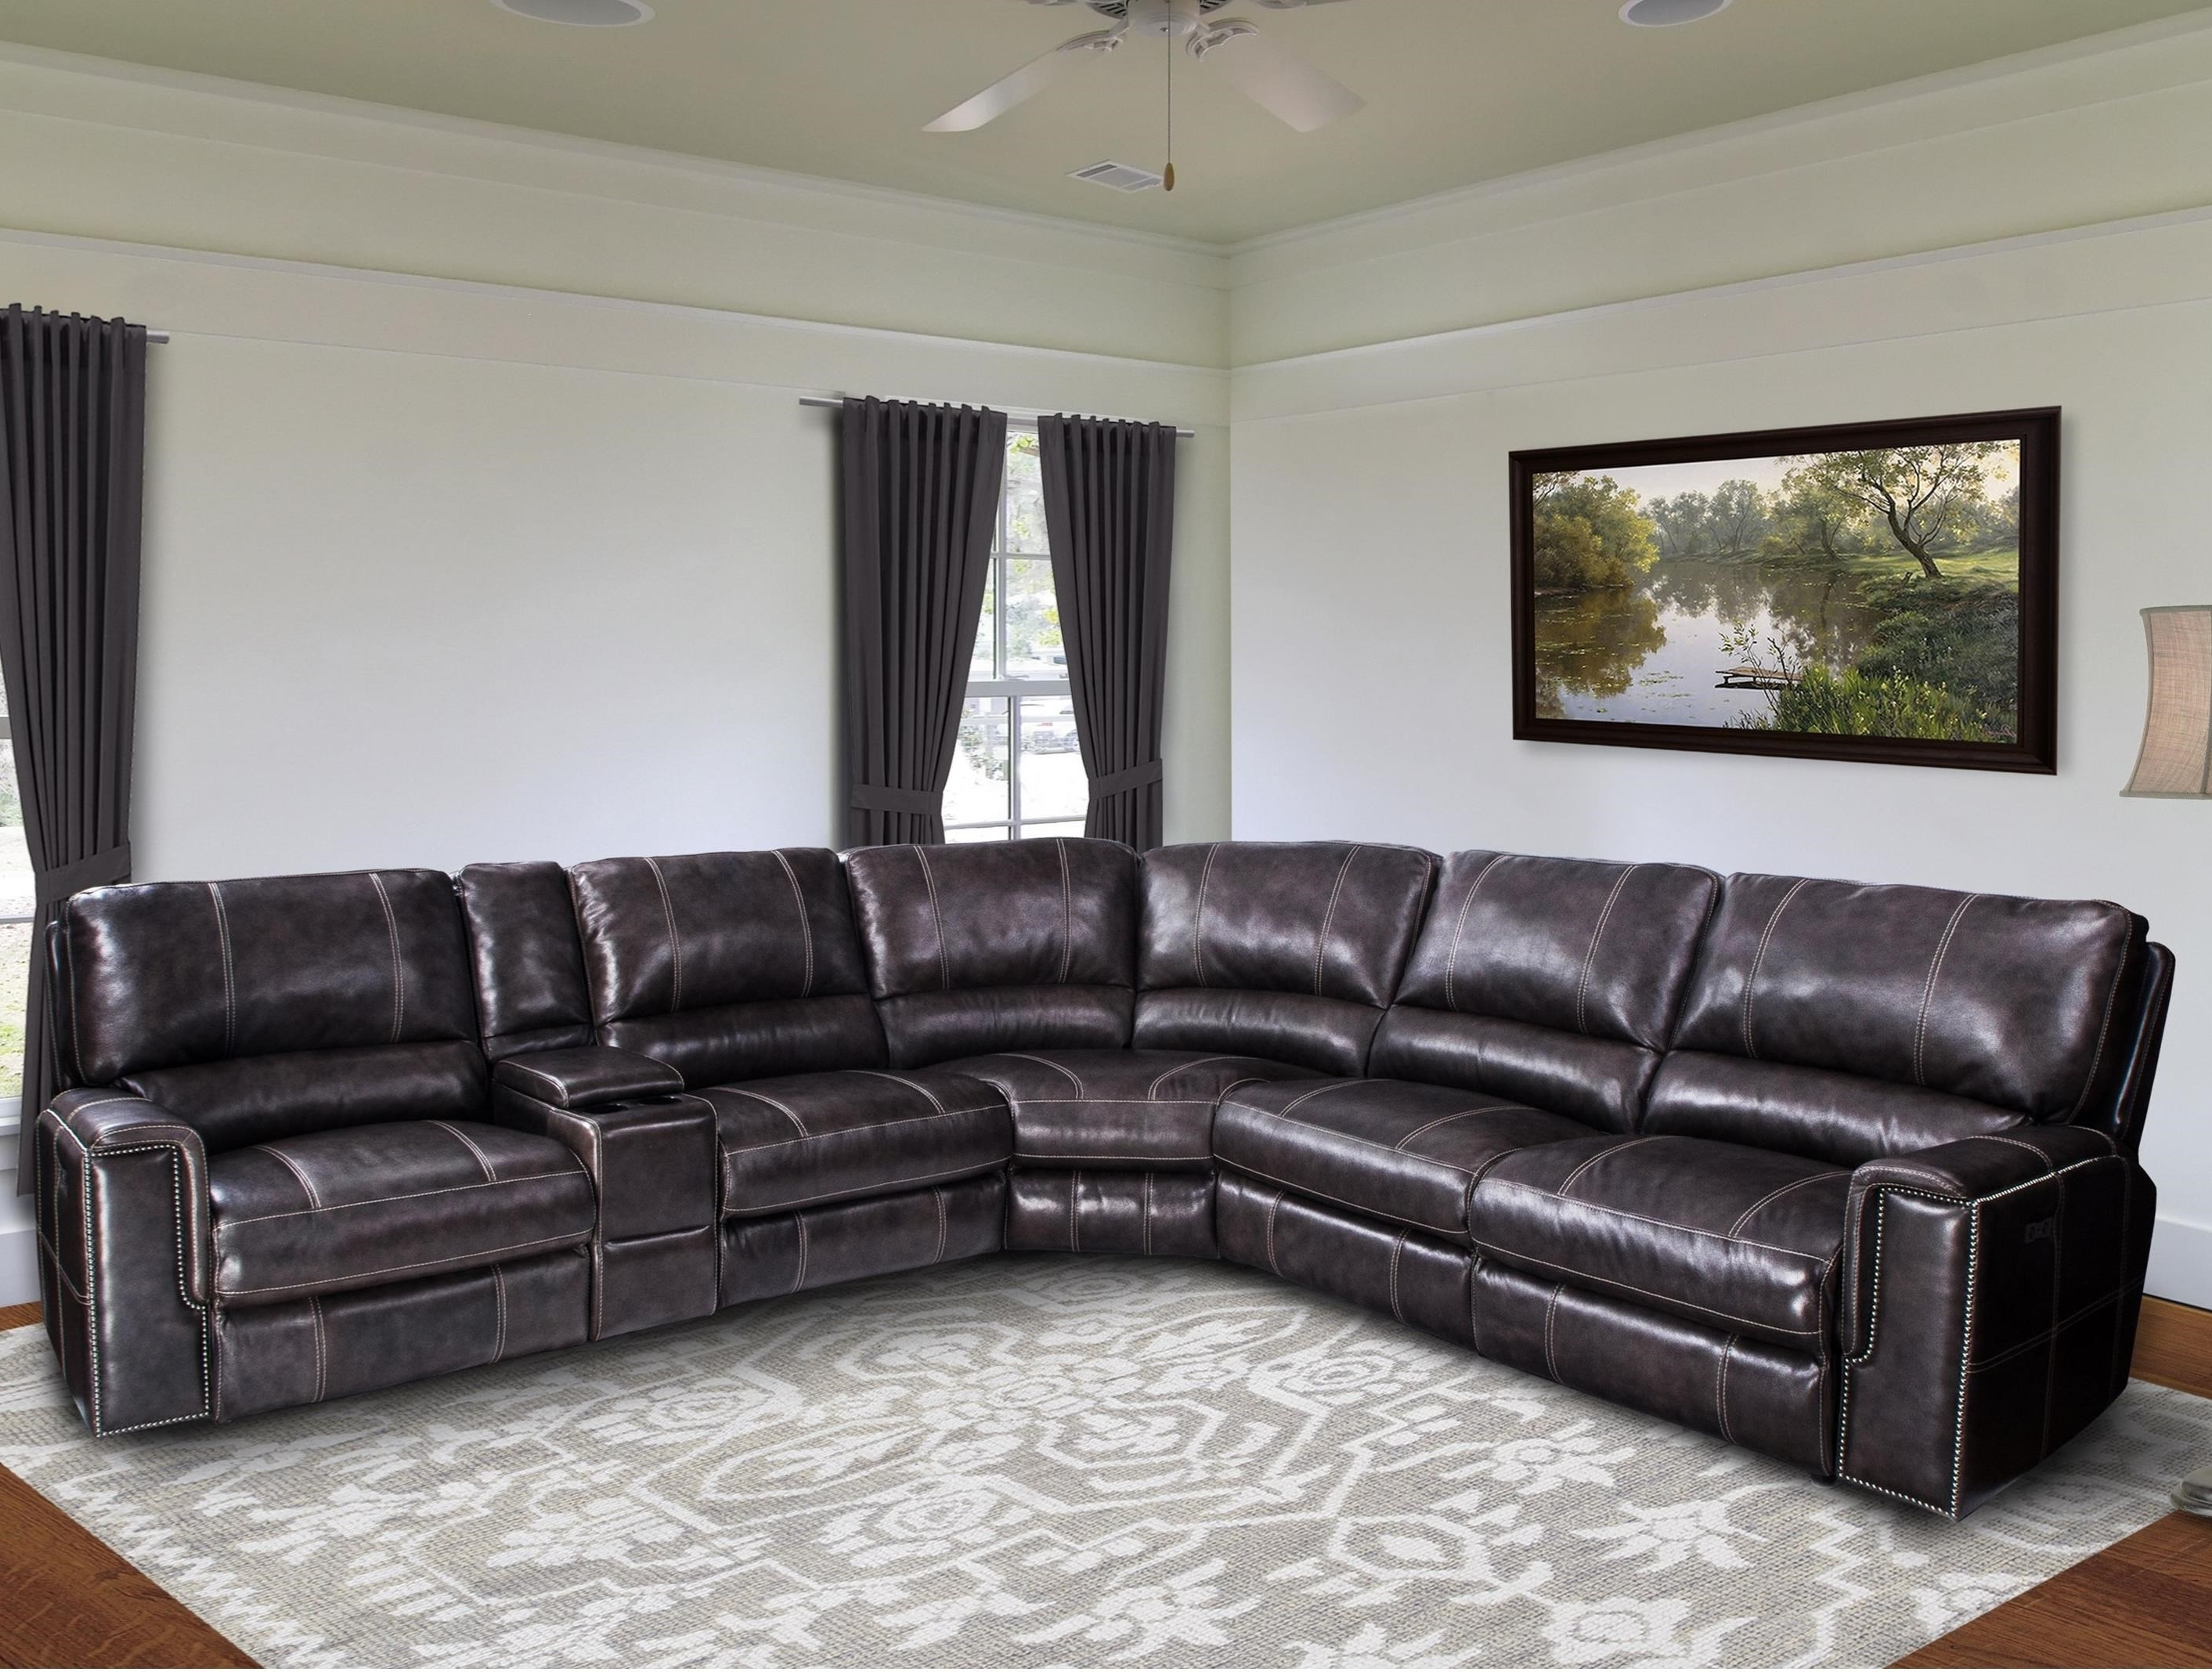 2019 Jerome Casual Power Reclining Sectional Sofa With Power Headrests With Jerome's Sectional Sofas (View 5 of 20)